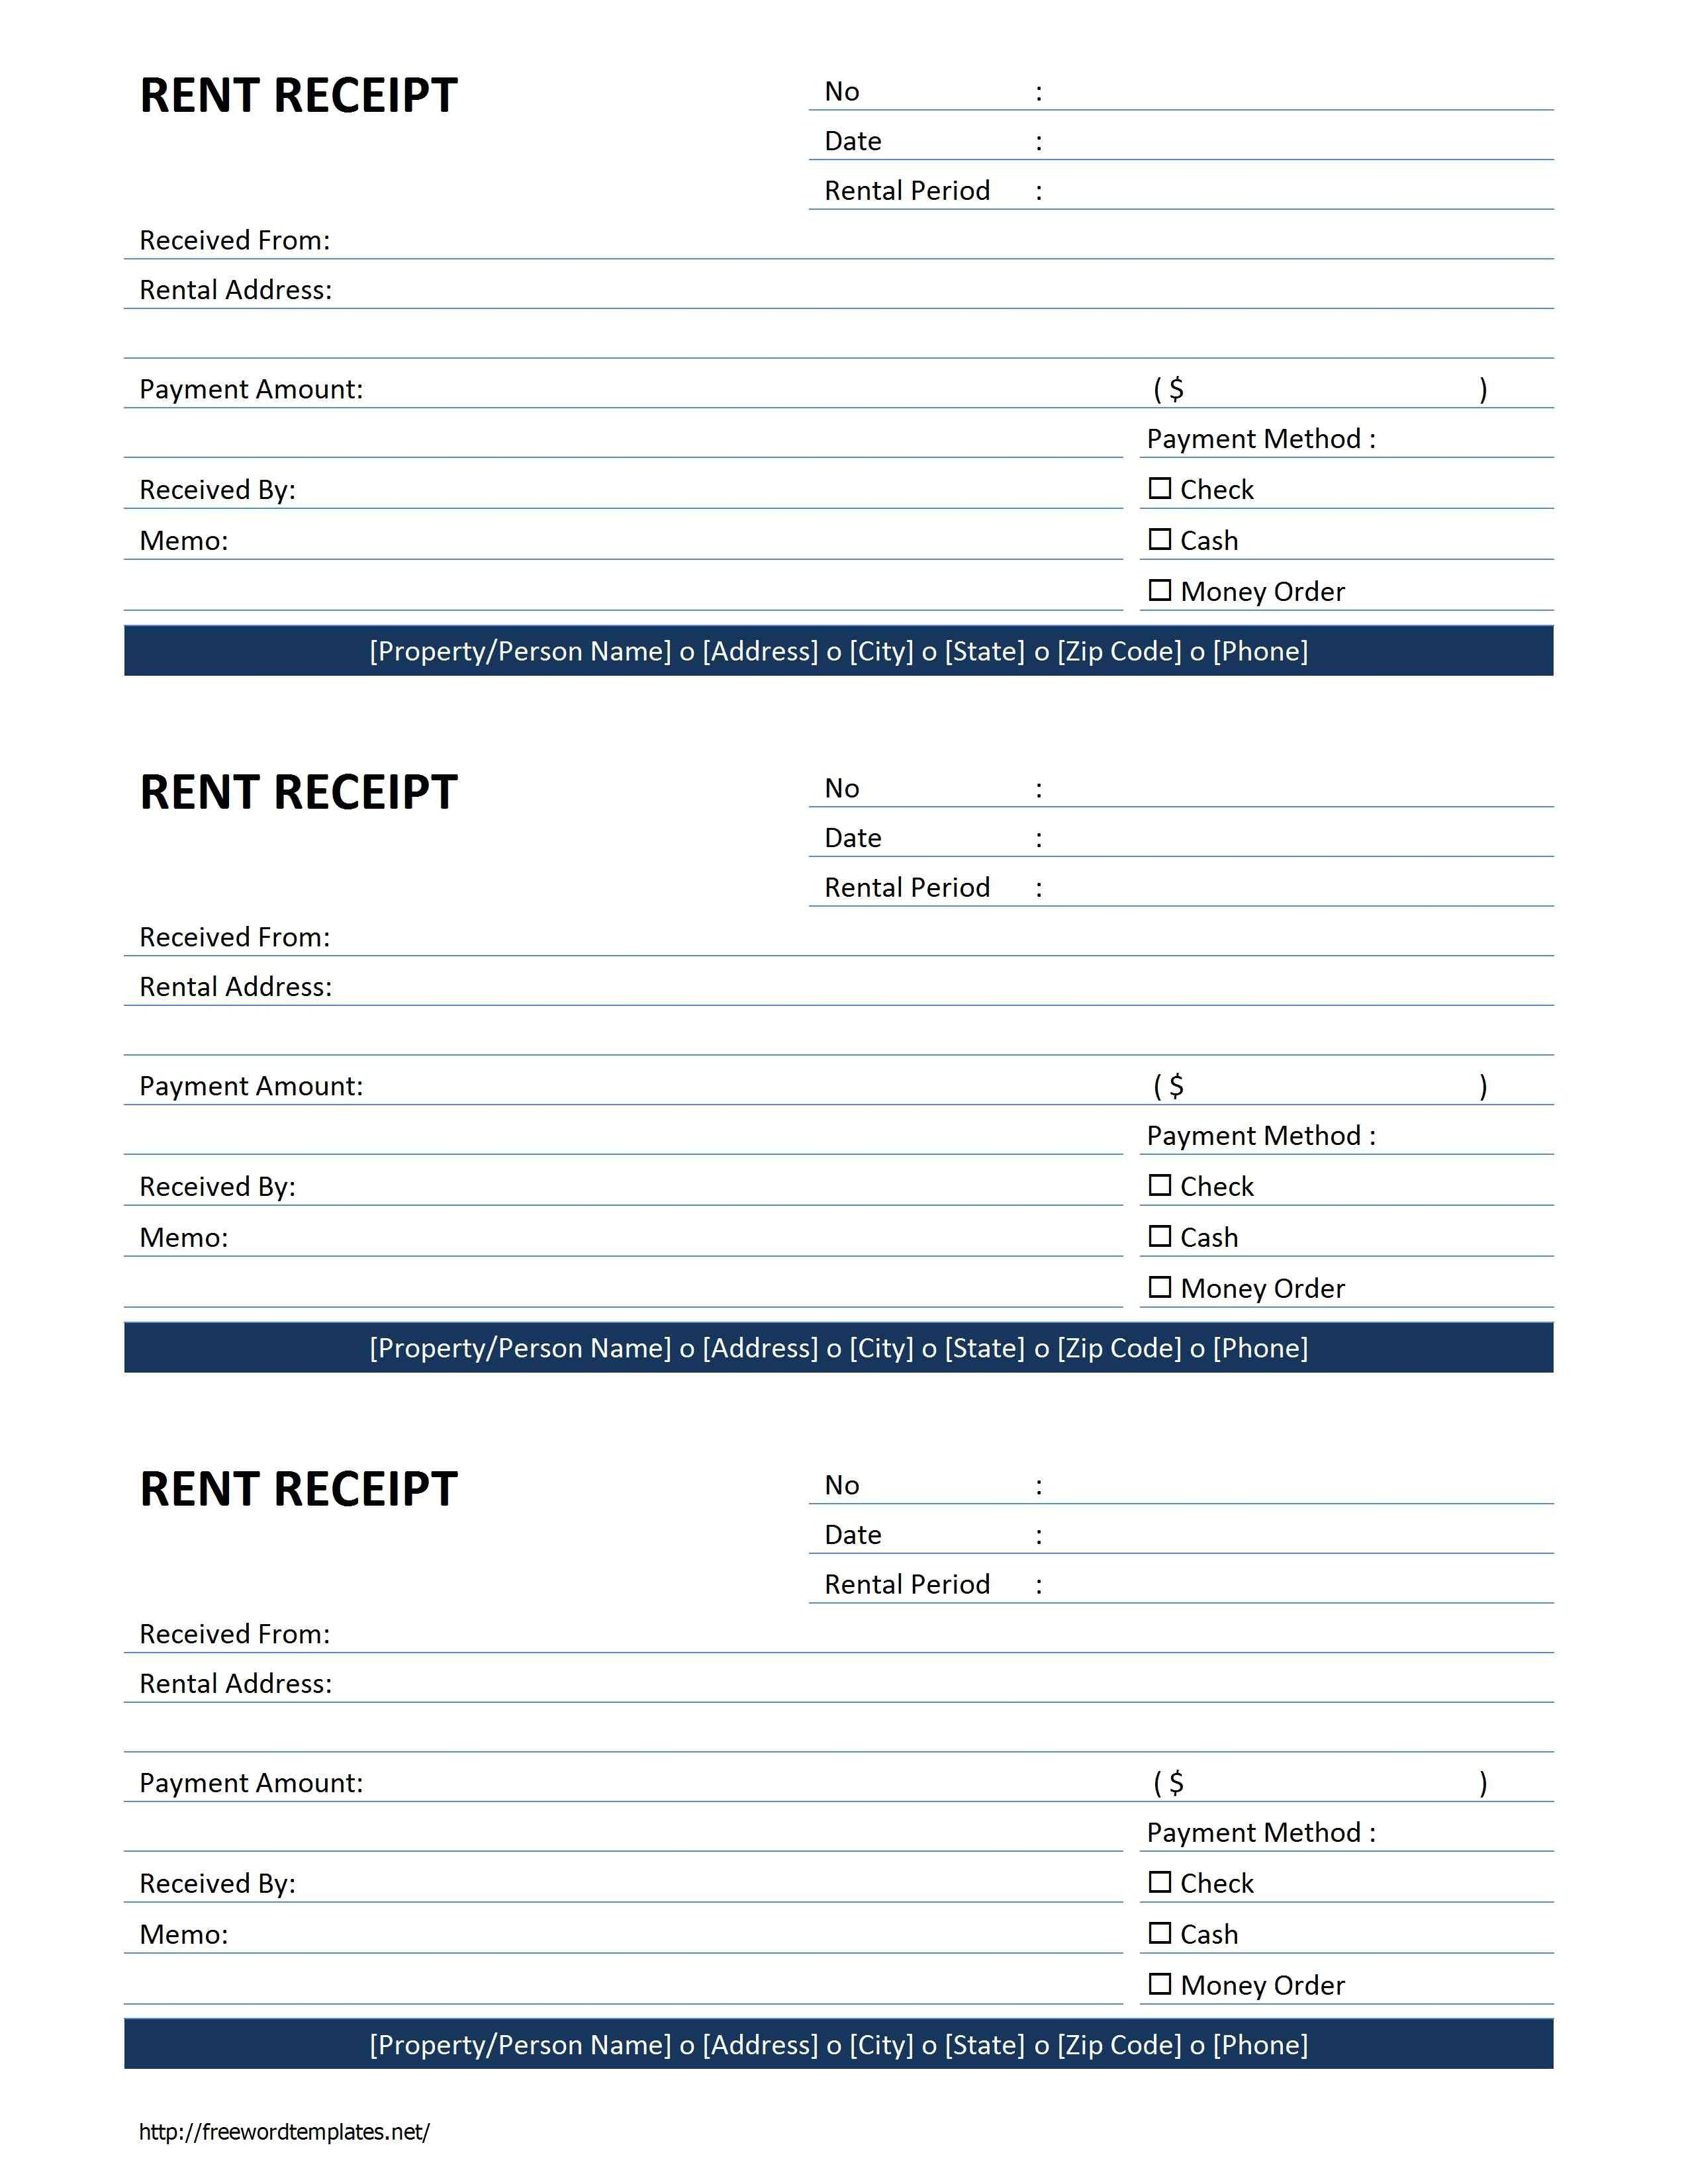 Rent Receipt Template Word Document Free Rent Receipt Free Printable Documents